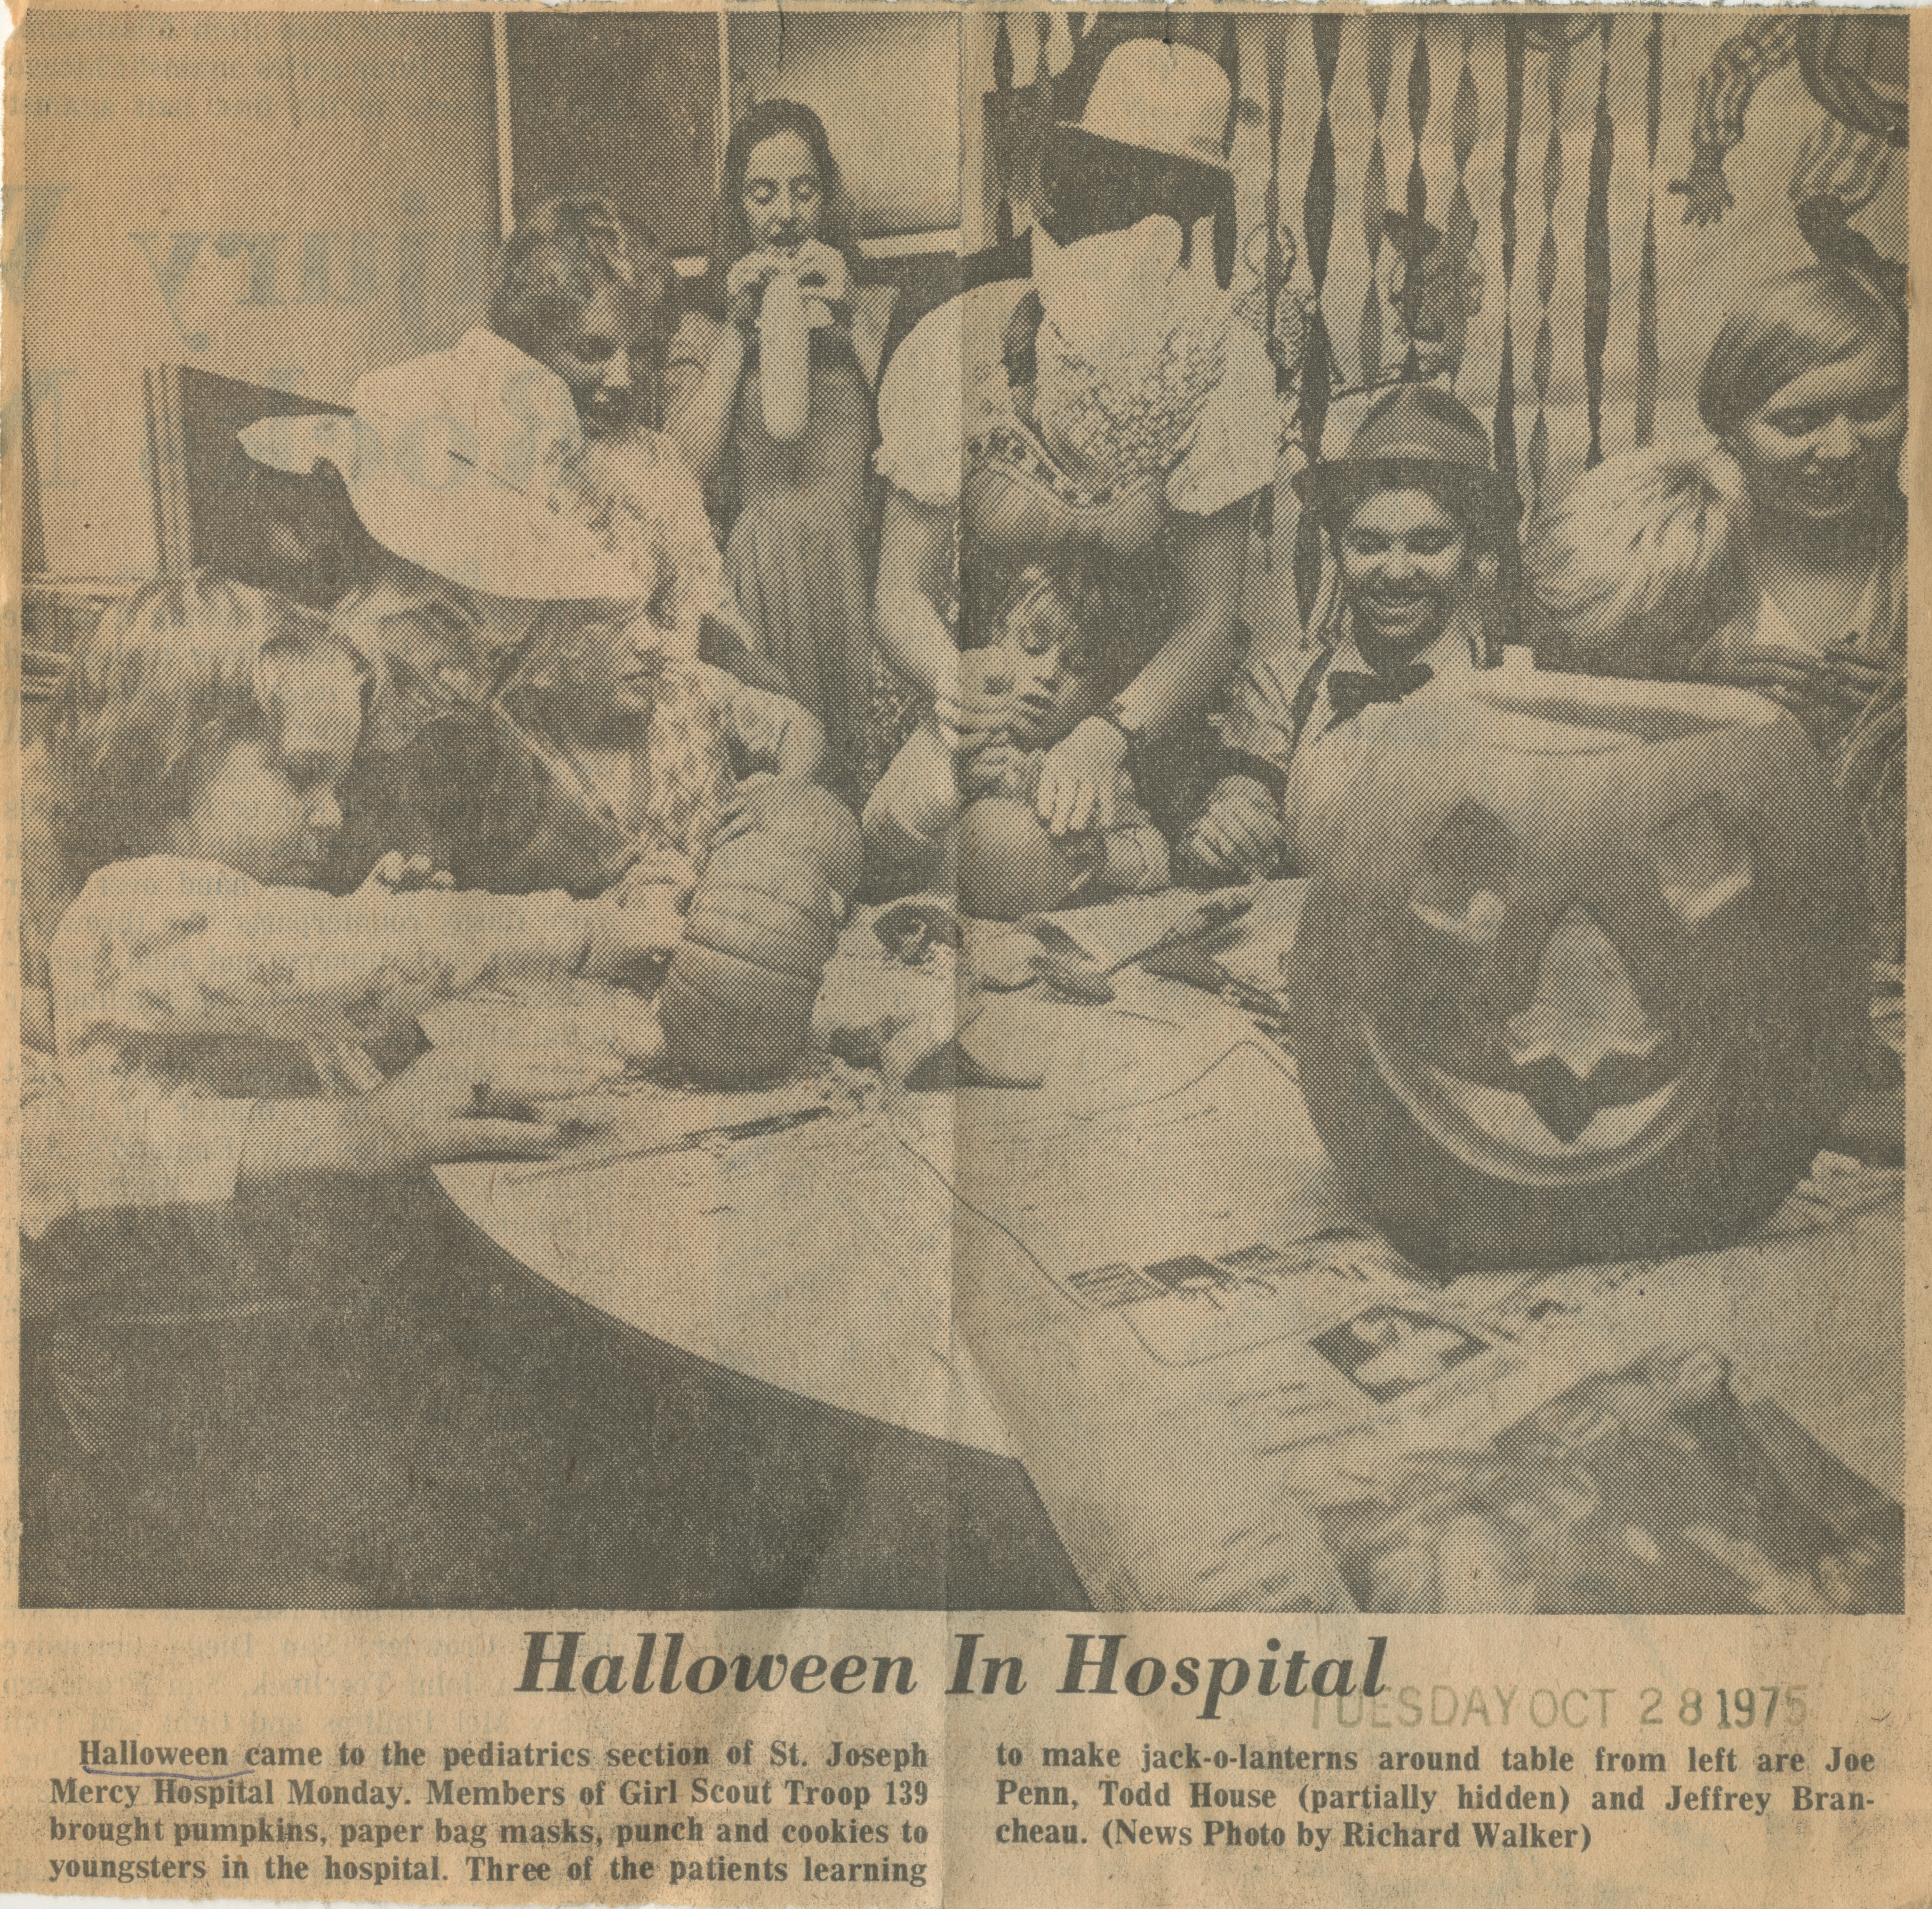 Halloween In Hospital image